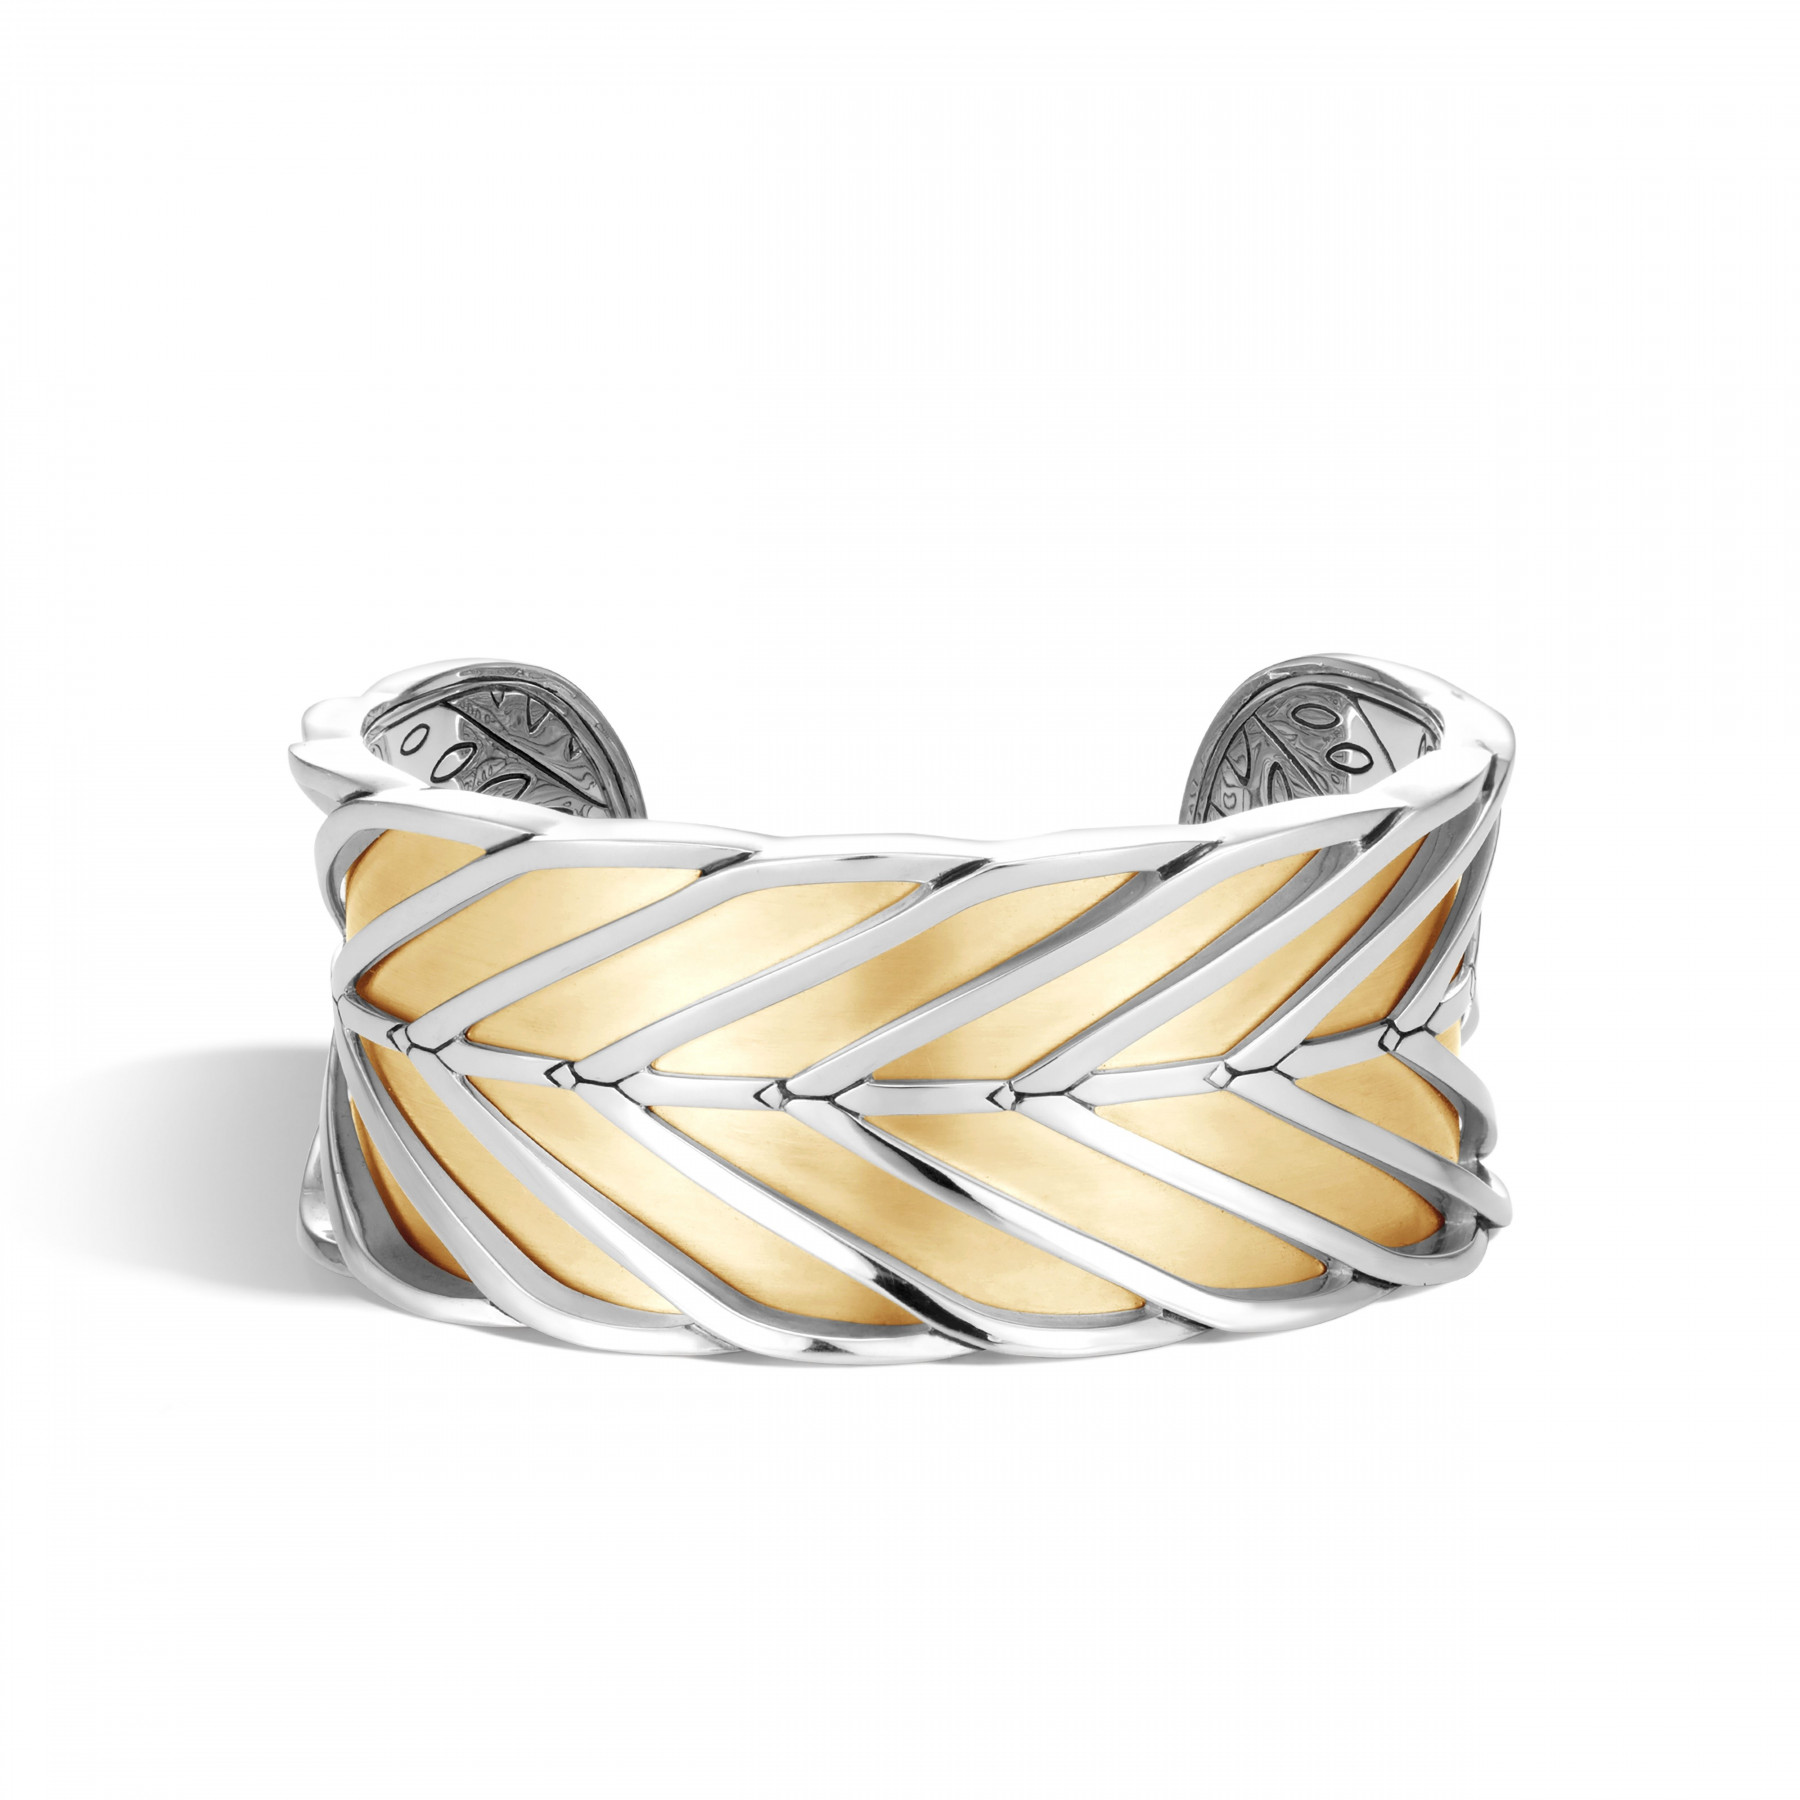 John Hardy Modern Chain 30mm Cuff Bracelet in Silver & Gold front view